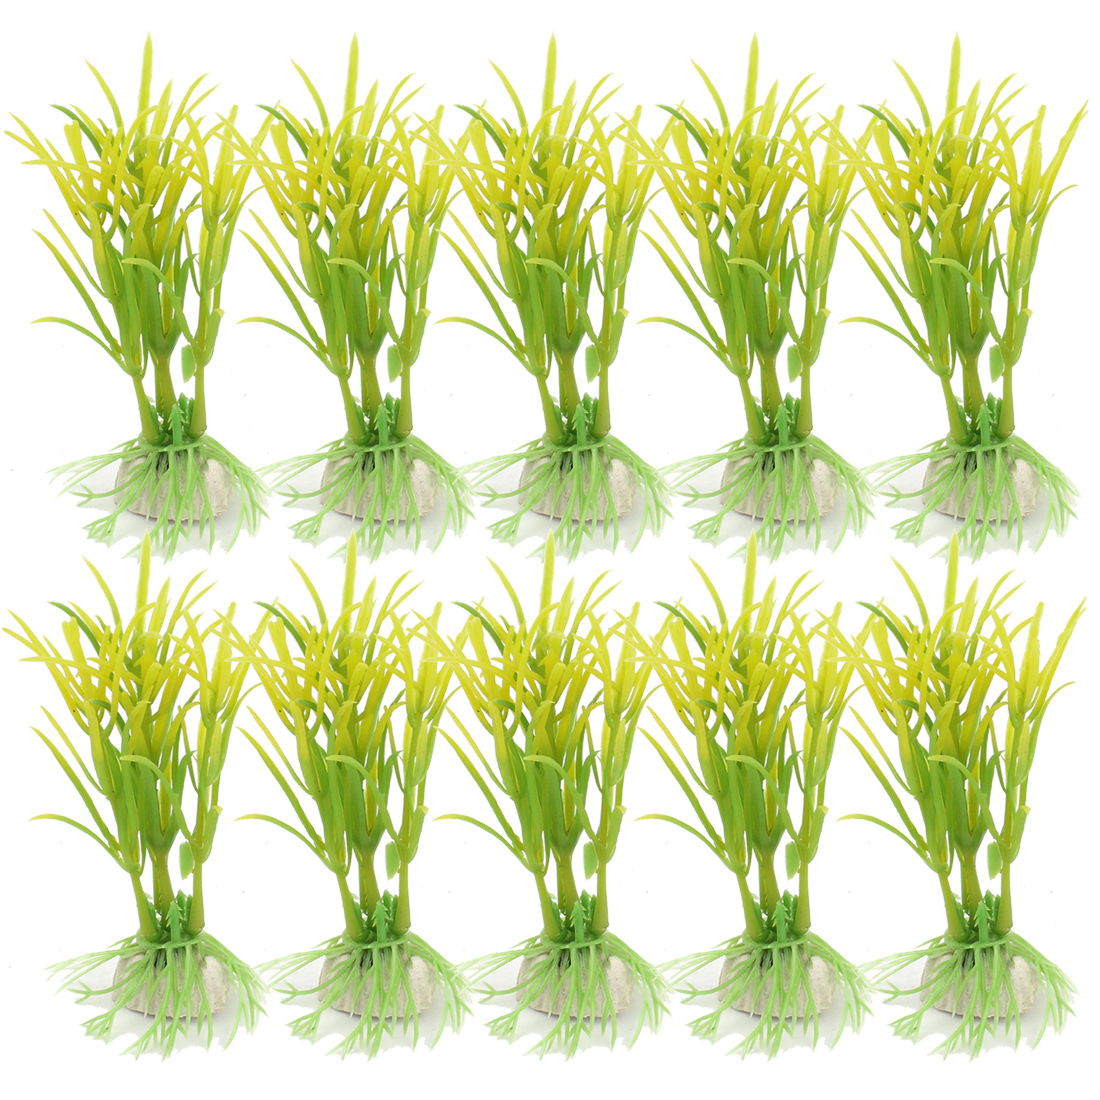 Plastic Underwater Sea Weeds Plant Fish Tank Aquarium Decoration 10pcs